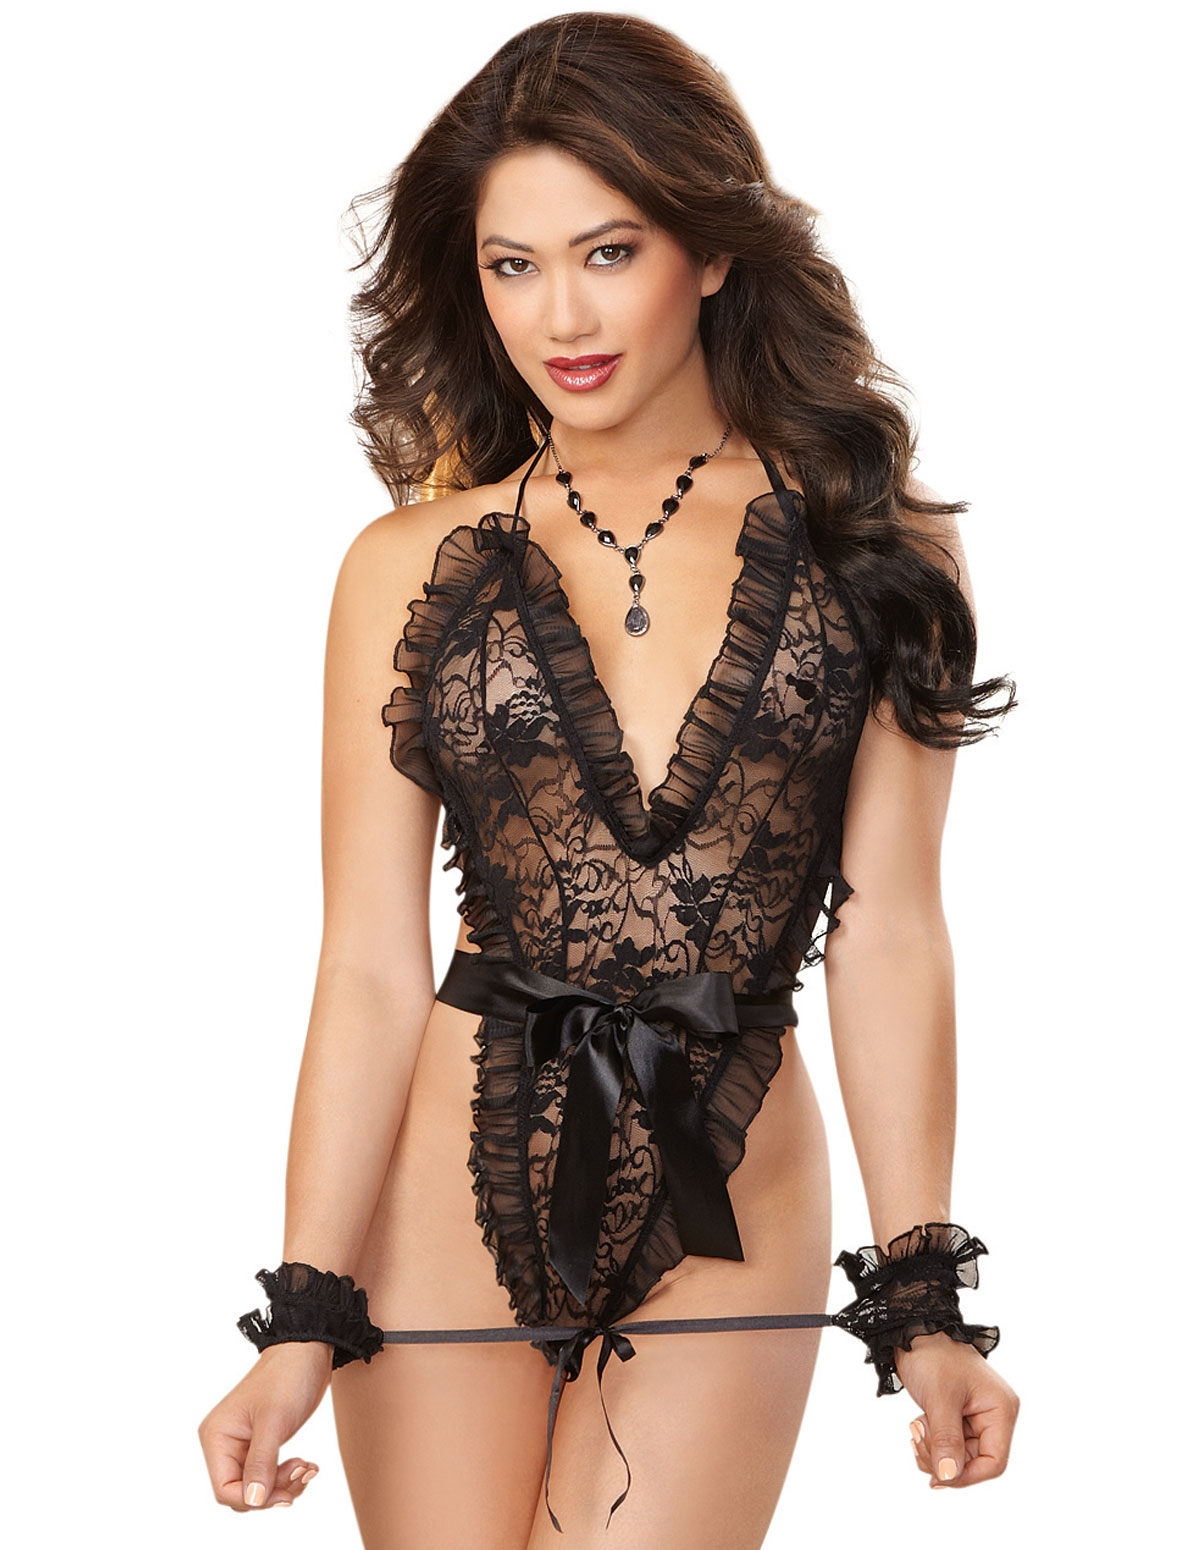 Ruffle Love Lace Teddy